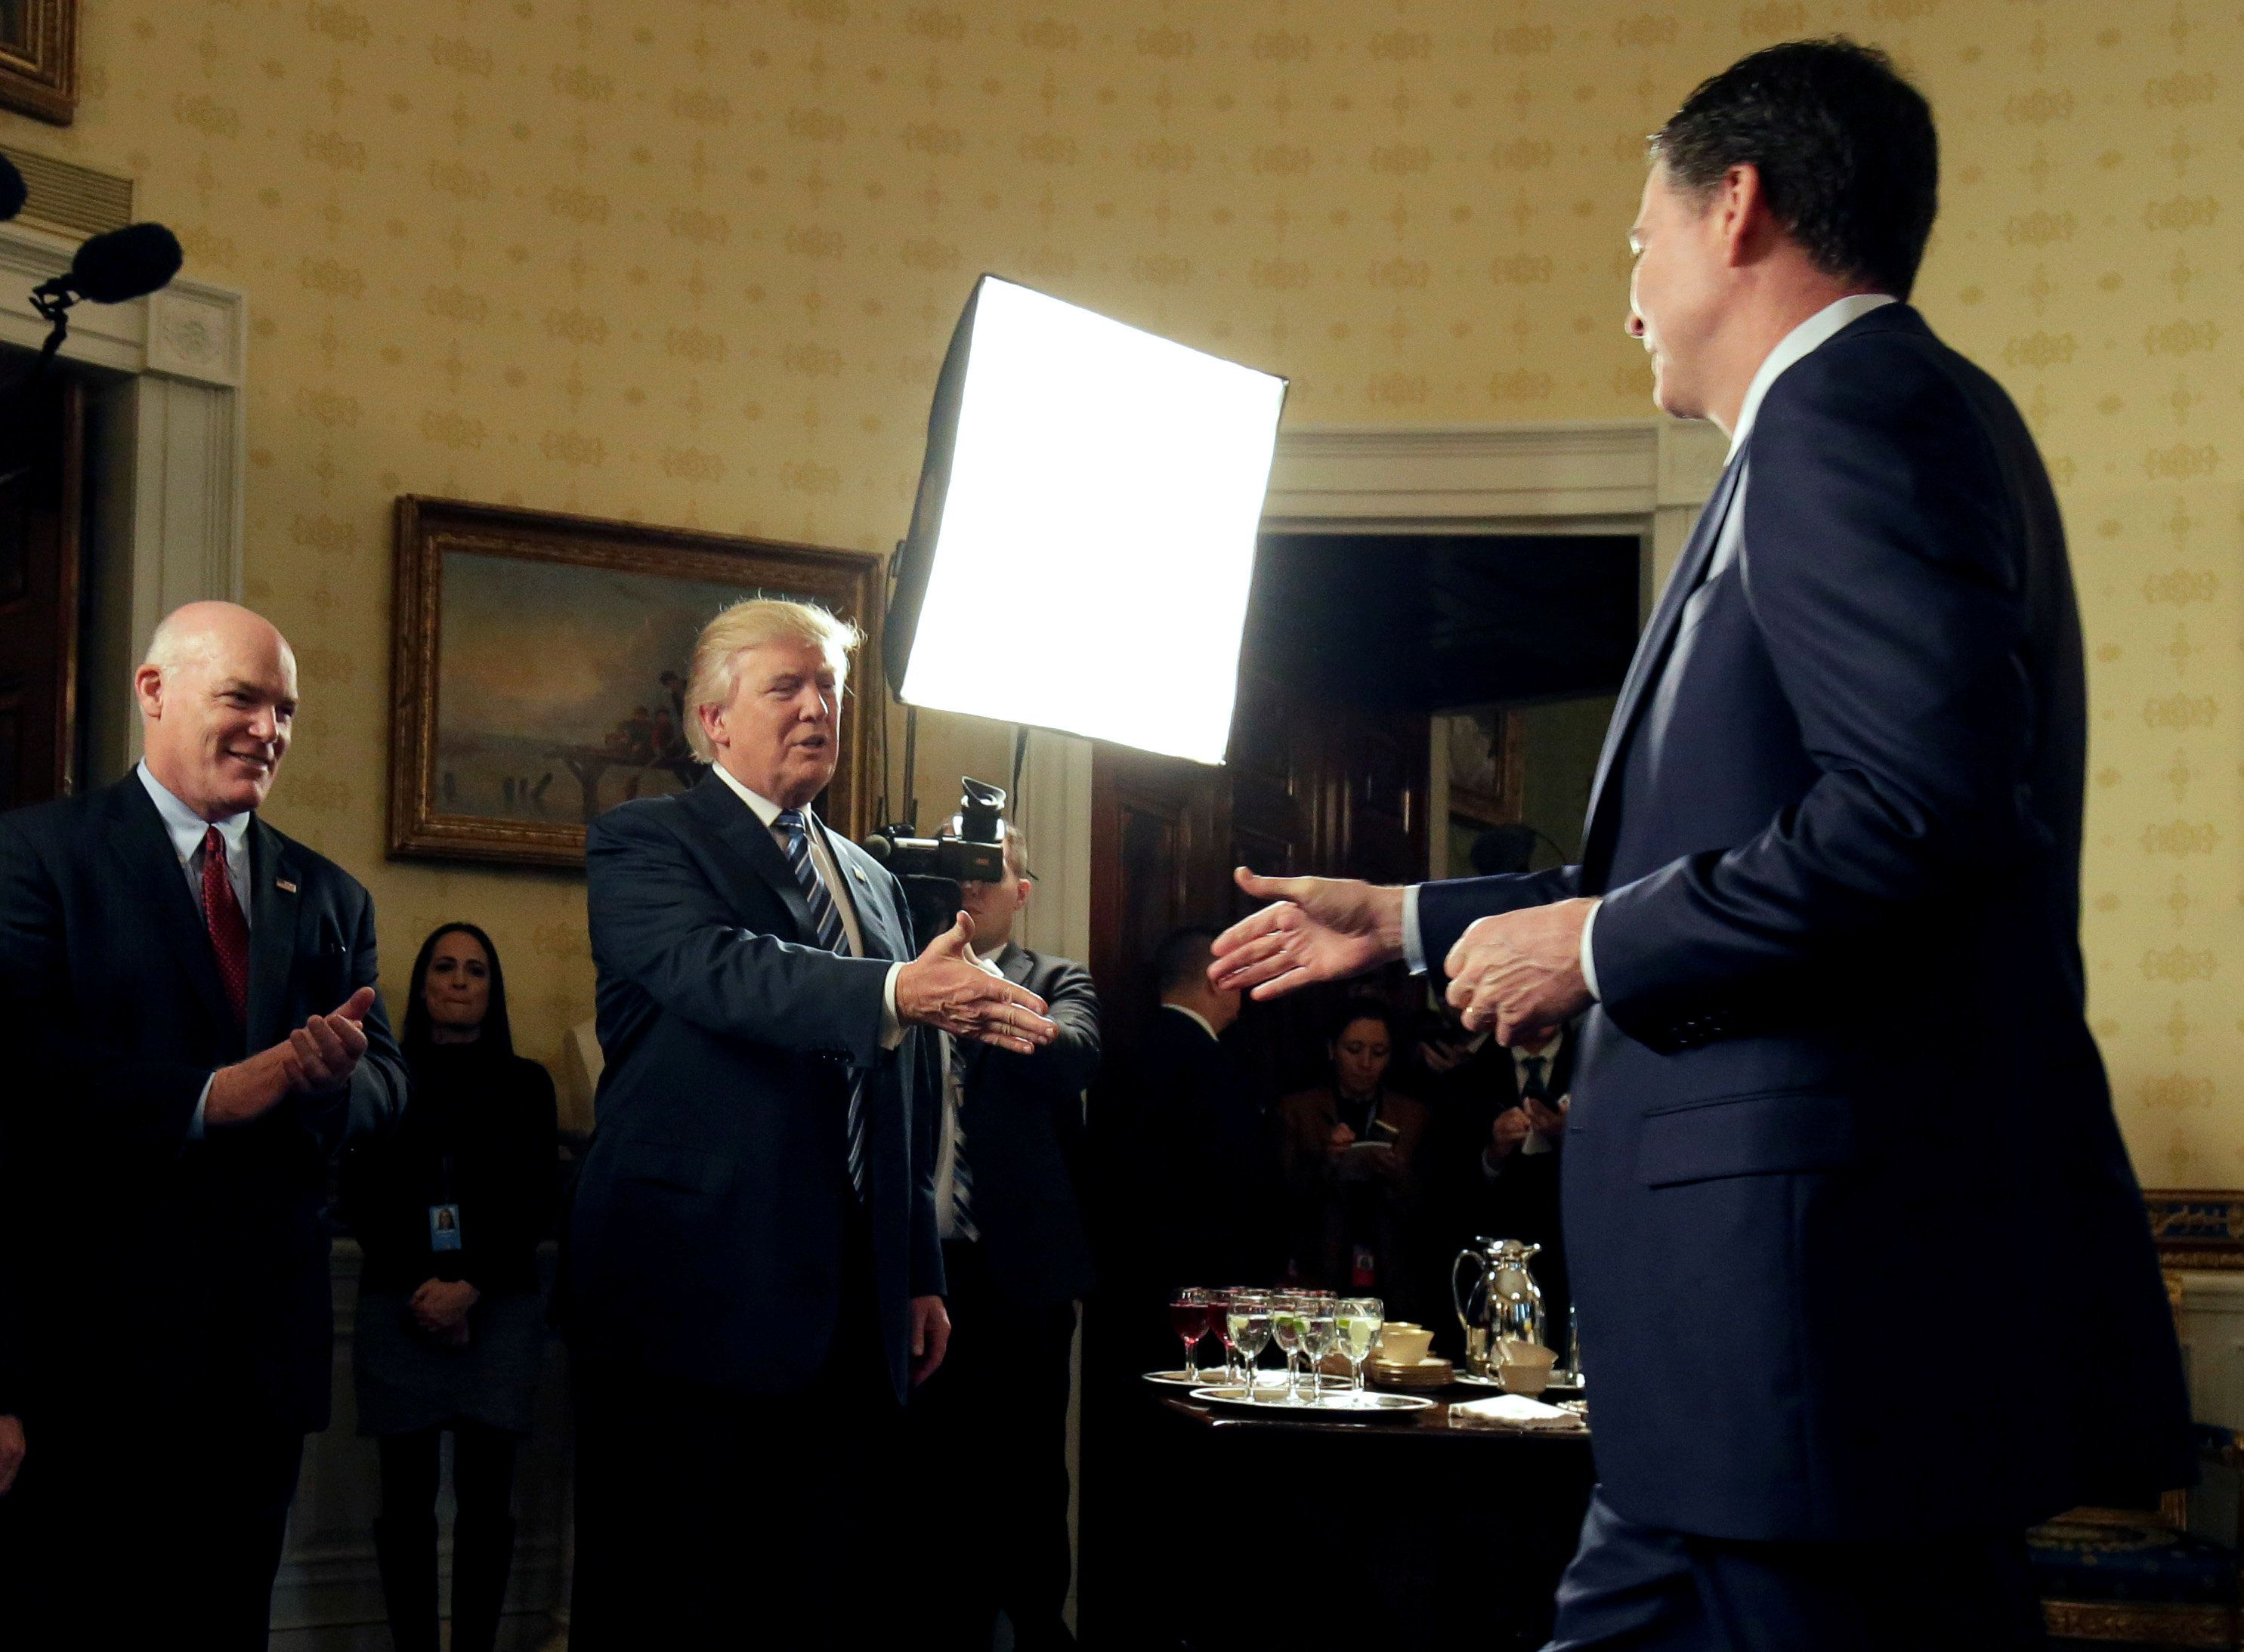 "U.S. President Donald Trump greets Director of the FBI James Comey as Director of the Secret Service Joseph Clancy (L), watches during the Inaugural Law Enforcement Officers and First Responders Reception in the Blue Room of the White House in Washington, U.S., January 22, 2017. Joshua Roberts: ""I have covered the White House for 16 years and normally either the President or the pool is in position when an event starts. In this case the President was not where anyone expected him to be. In fact, he was almost blocking the door when the pool came in. We had to scramble to find a position without bumping him or the furniture as he greeted and thanked members of law enforcement for their security efforts during the inauguration. Luckily, he greeted FBI Director James Comey a few seconds after the pool had made its way into the room."" REUTERS/Joshua Roberts/File Photo  SEARCH ""POY TRUMP"" FOR THIS STORY. SEARCH ""REUTERS POY"" FOR ALL BEST OF 2017 PACKAGES.    TPX IMAGES OF THE DAY"